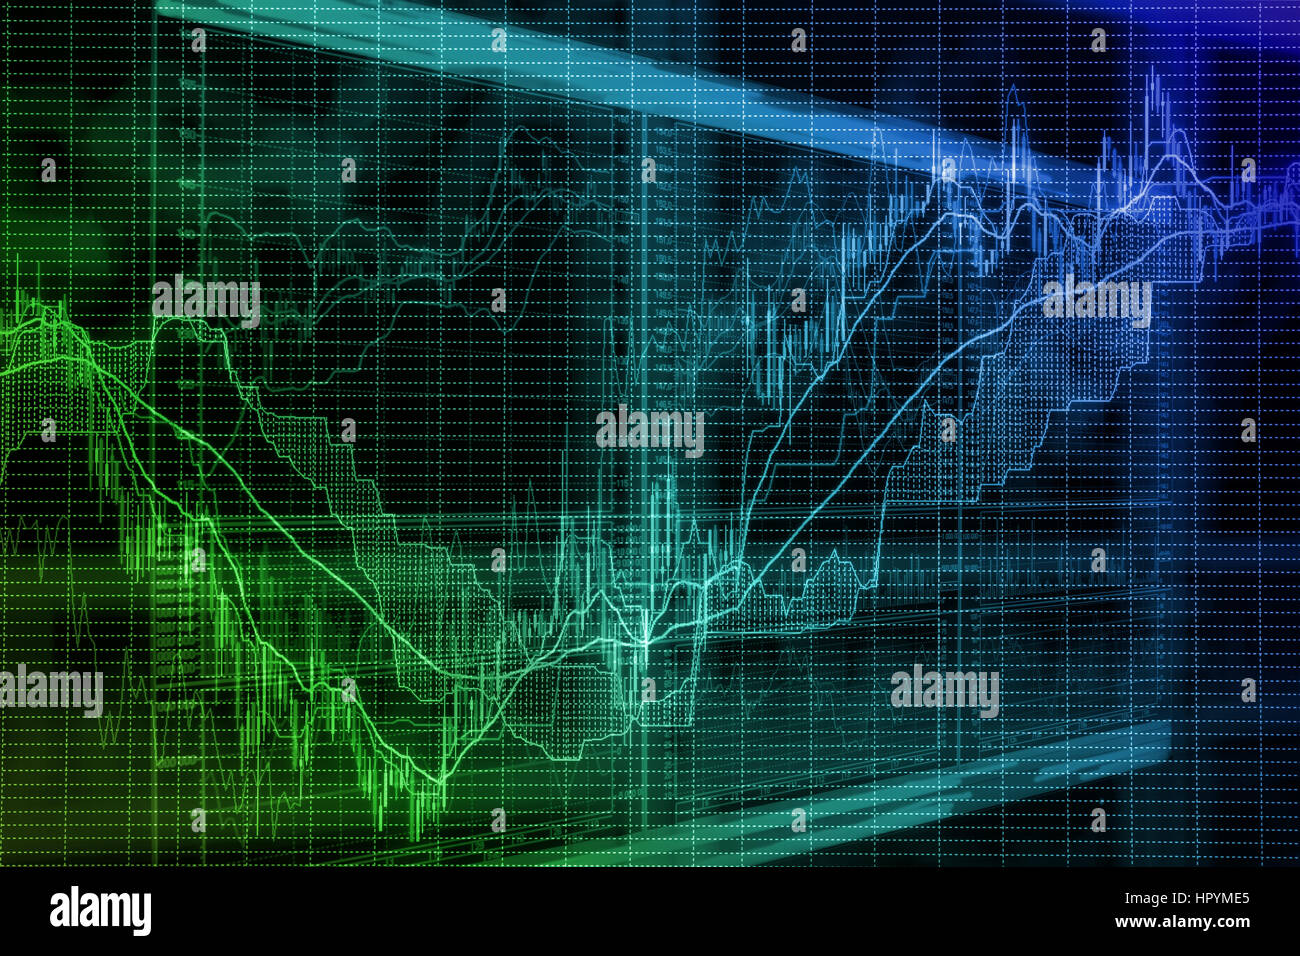 Abstract blurred background based on stock market graphs on the screen. Stock exchange activity and exchange rates - Stock Image